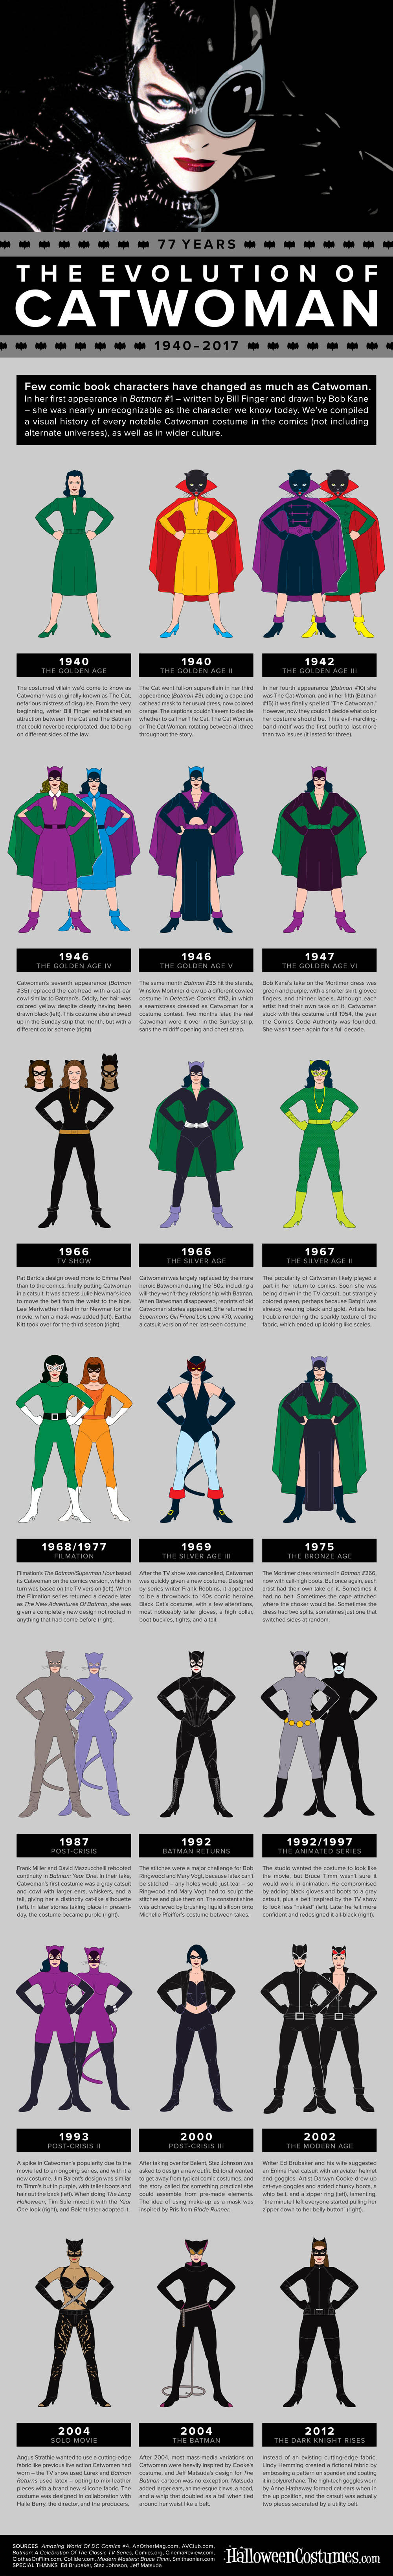 Evolution of Catwoman